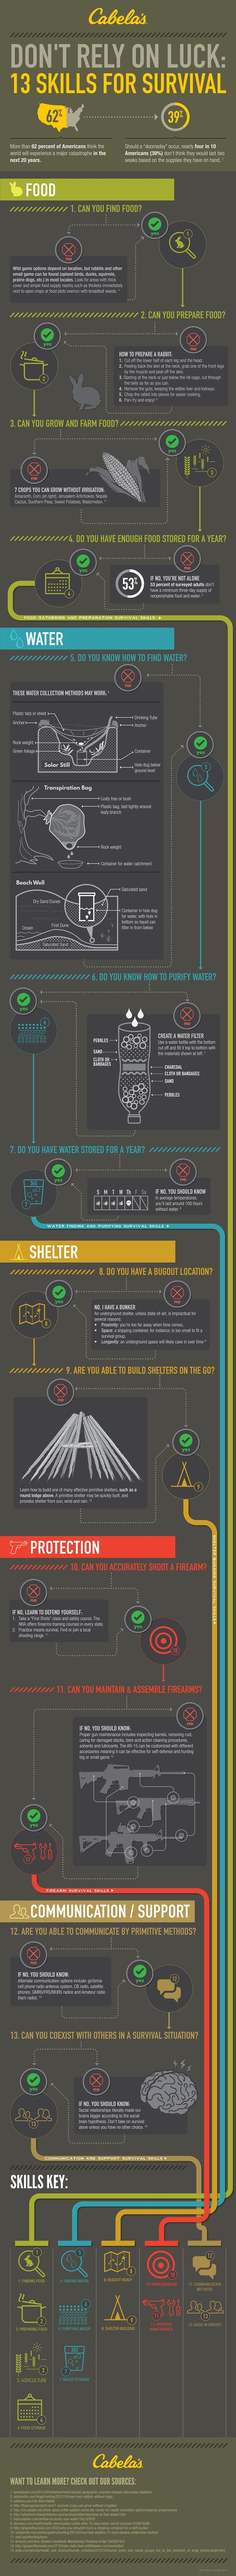 13 Top Survival Skills | Learn Now, Survive Later | Doomsday Prepping For Beginners Or Seasoned Prepper by Survival Life at http://survivallife.com/2015/12/09/survival-skills-infographic/